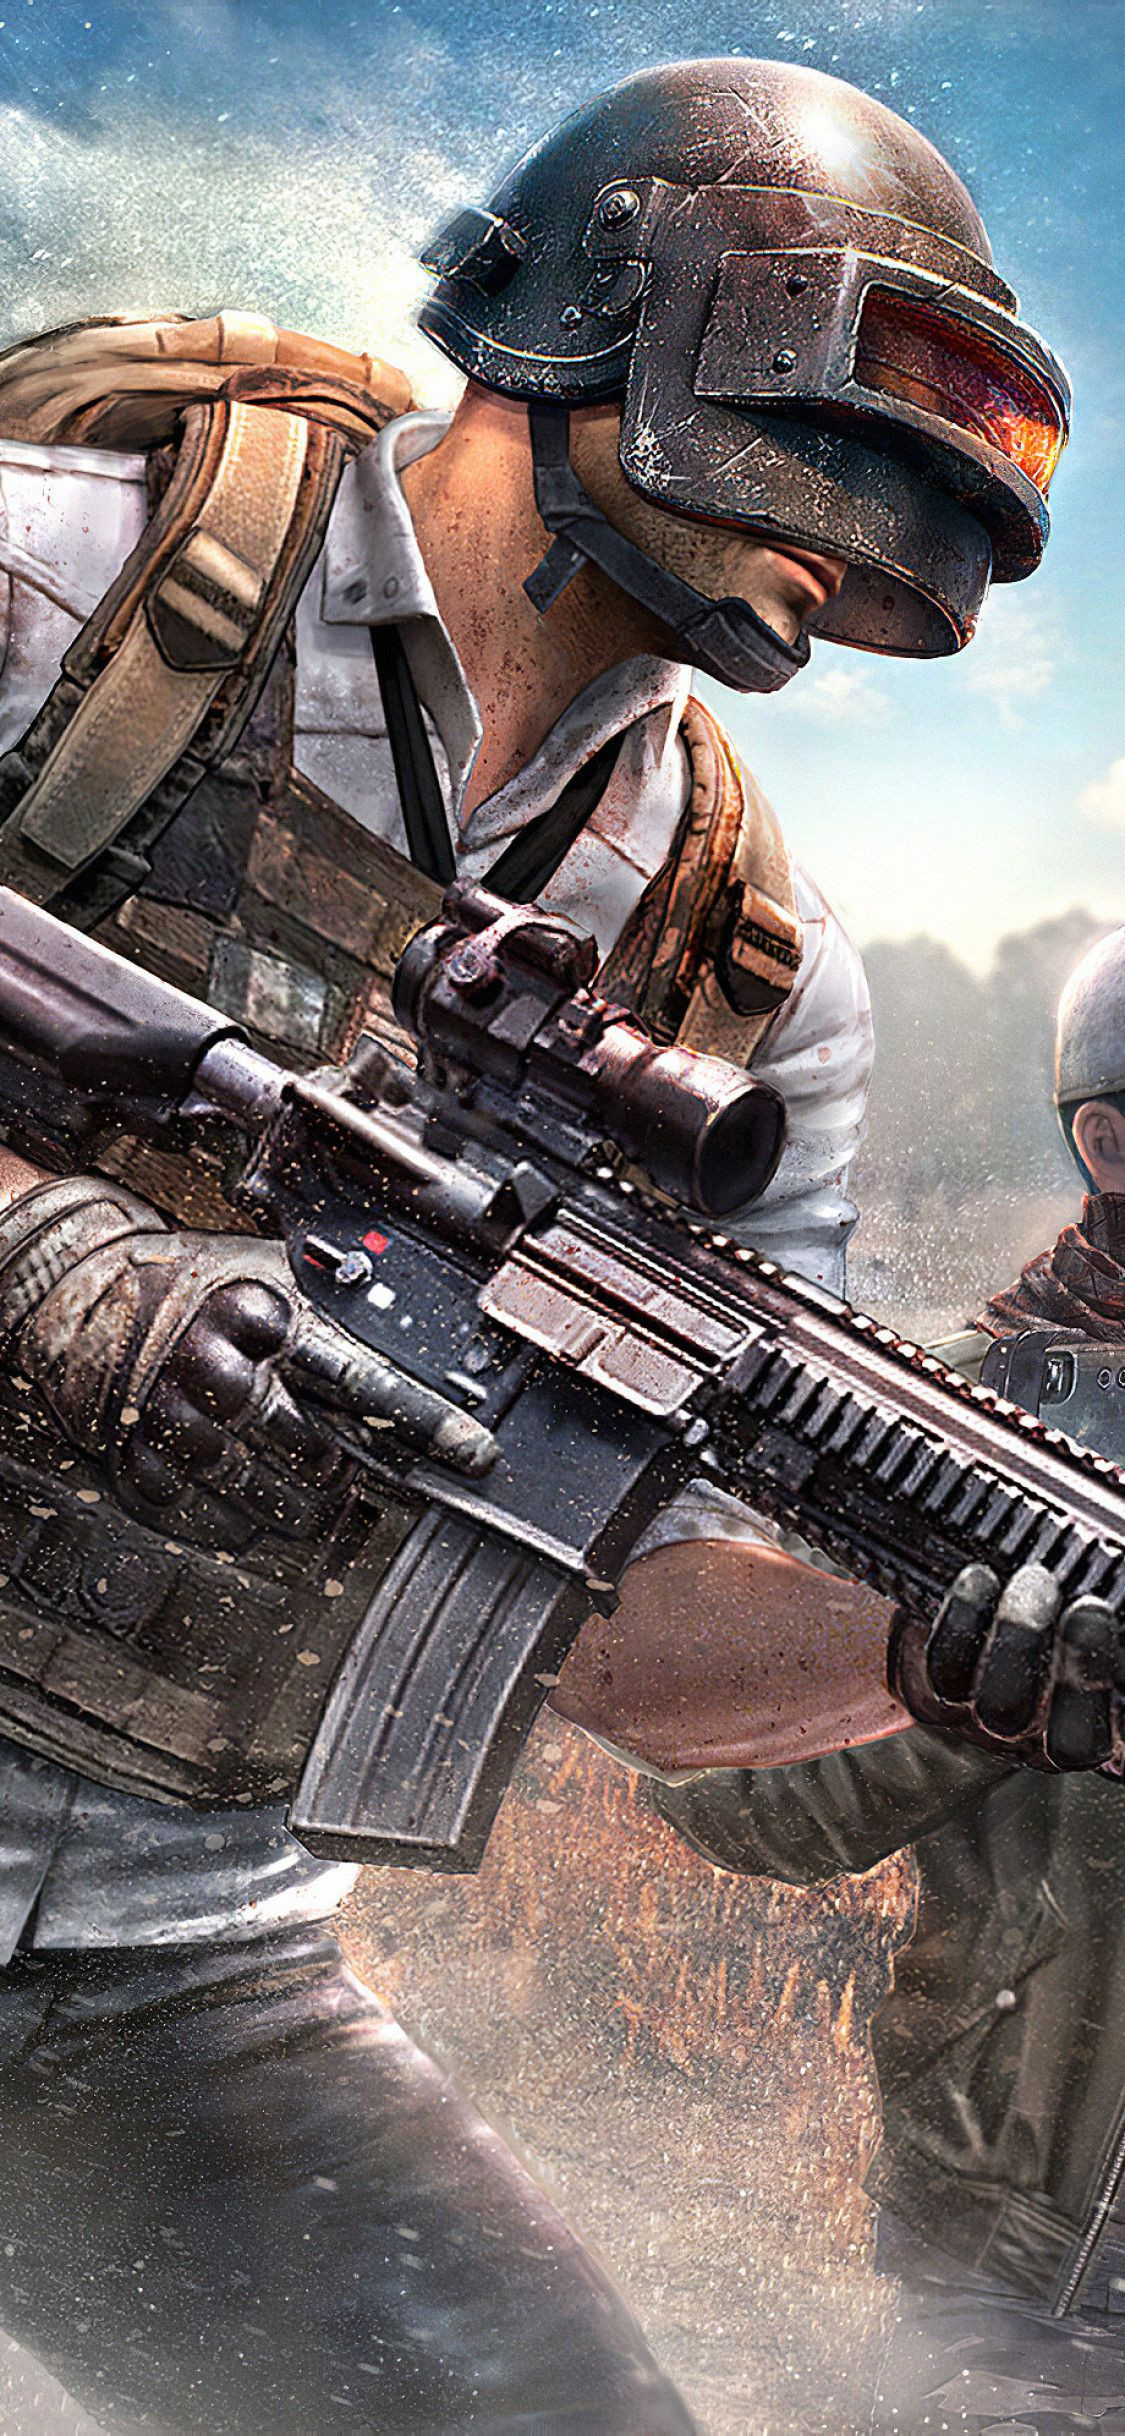 Pubg IPhone Backgrounds Cool backgrounds in 2020 (With